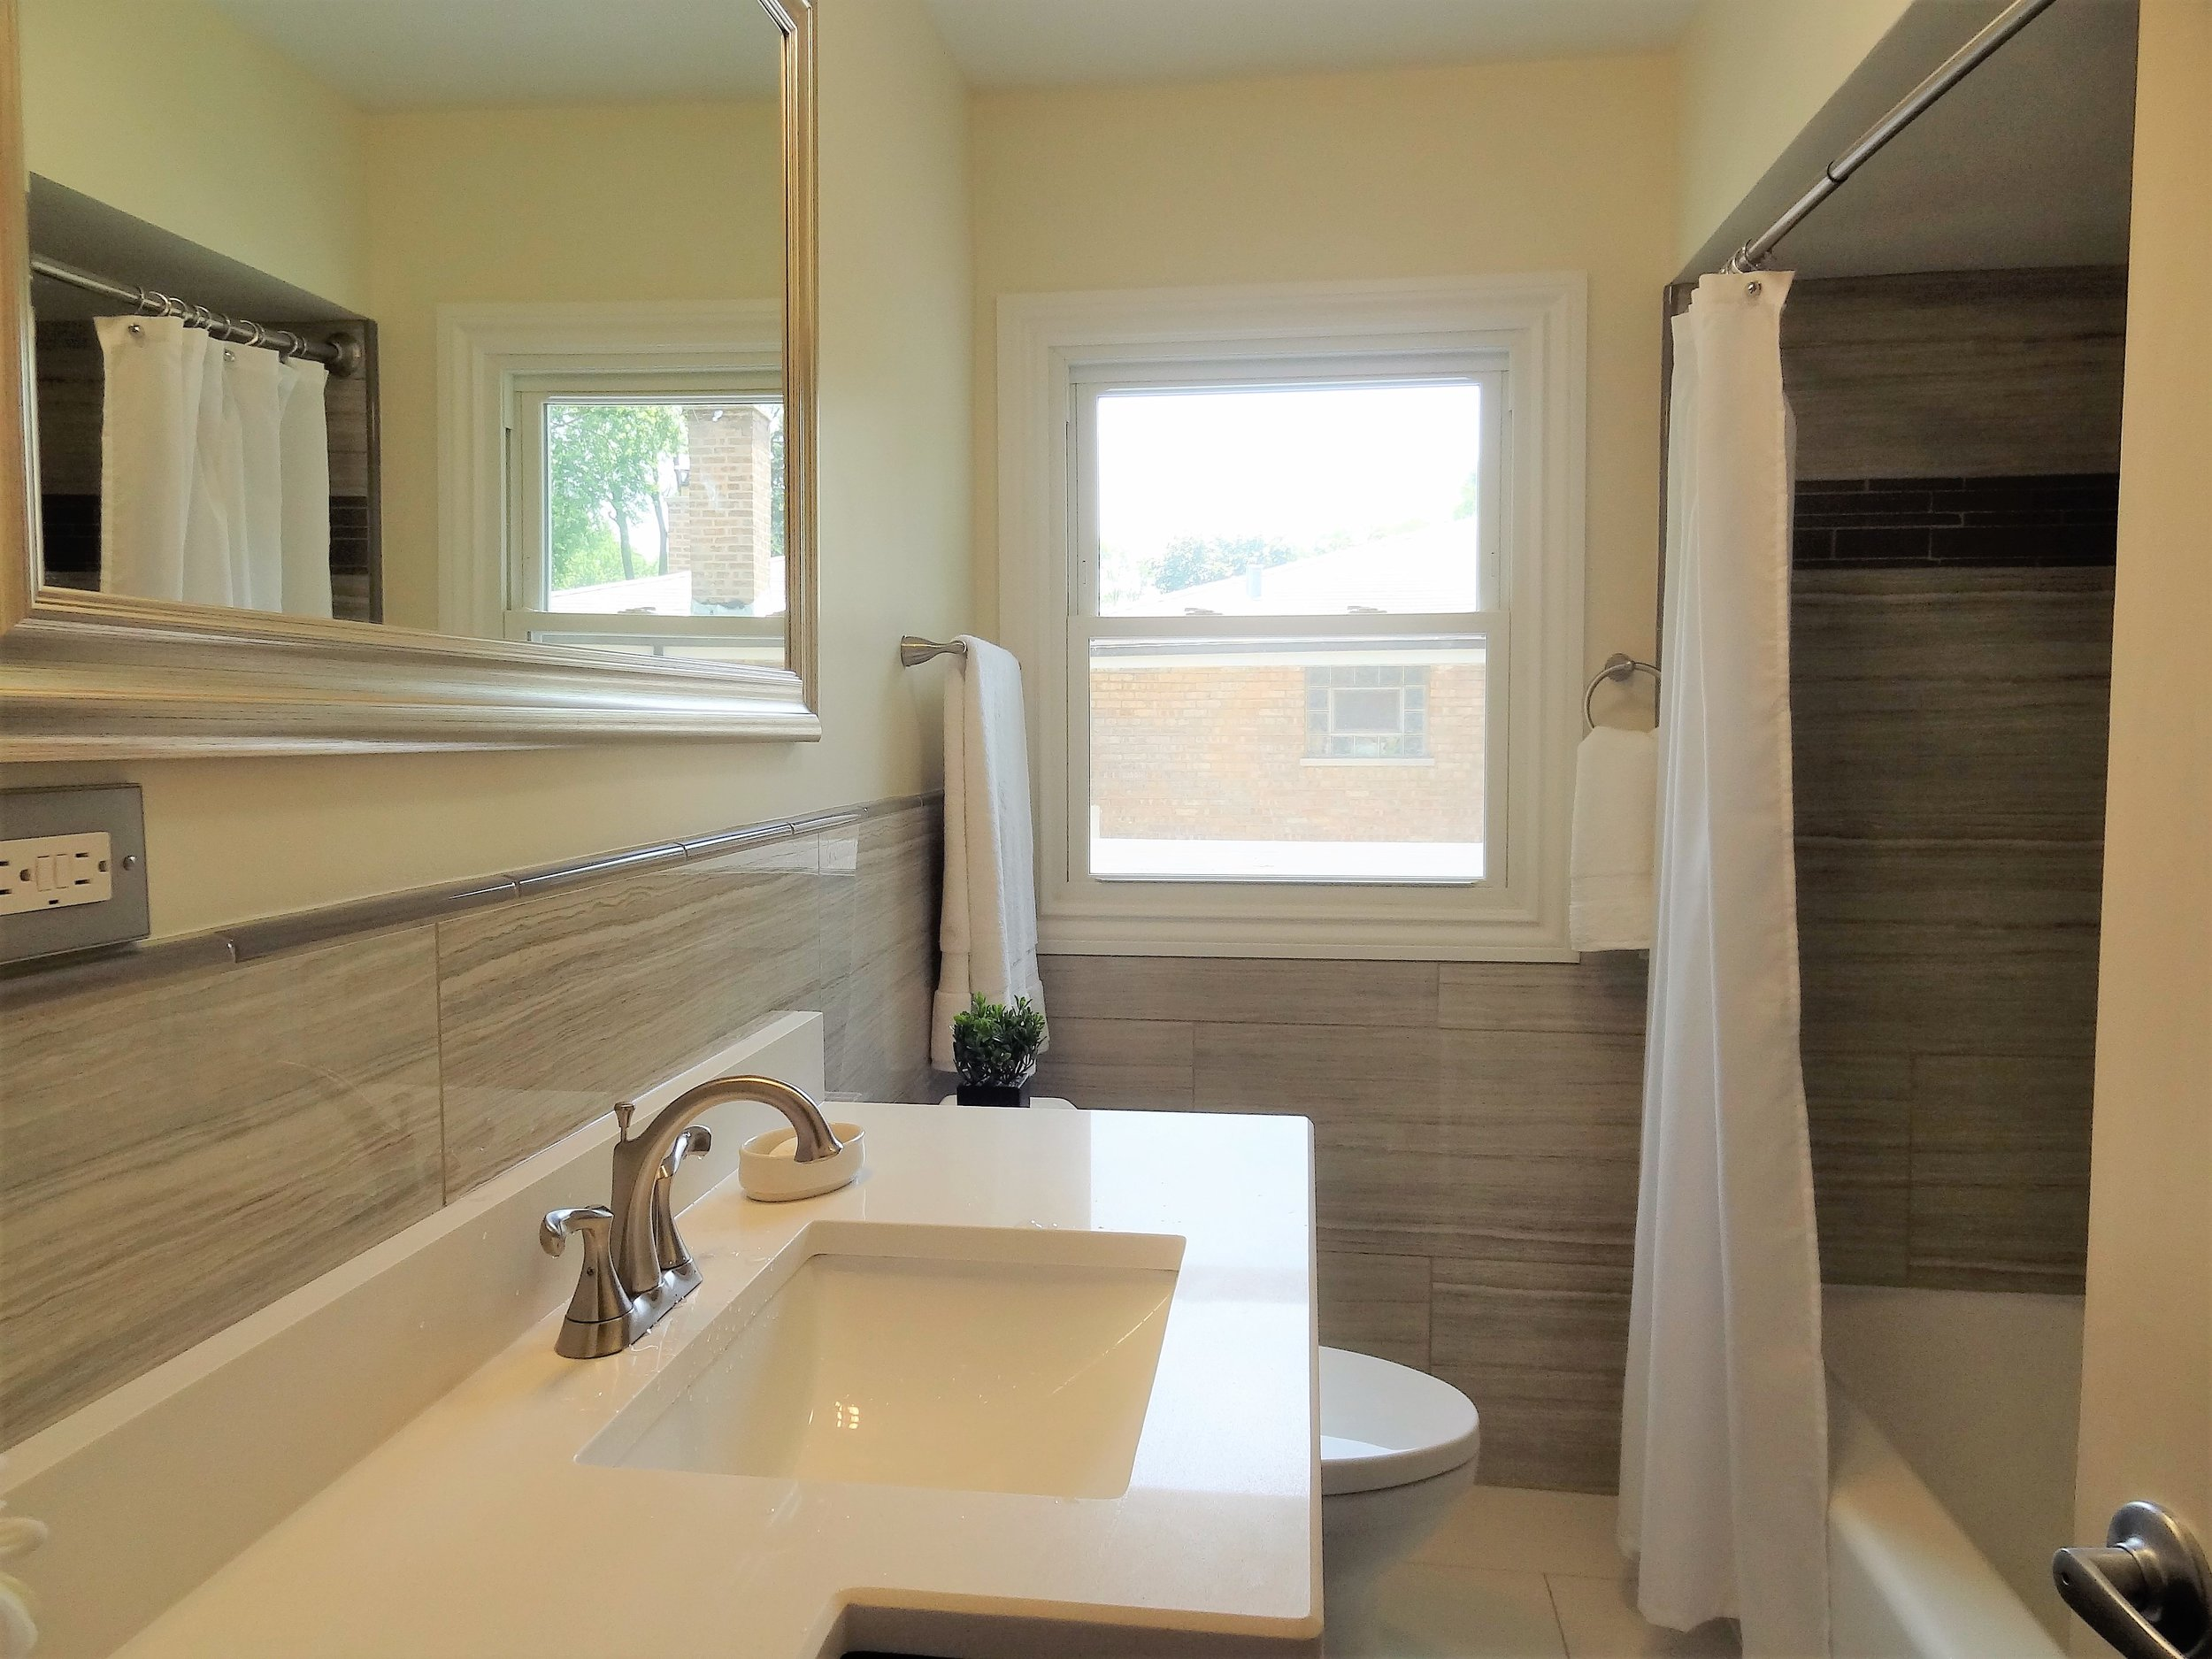 3 Bedroom 2 Bathroom Single Famly Home Ronovation | After | Equity Twins | Oak Lawn, IL | Chicago, IL | Updated Bathroom